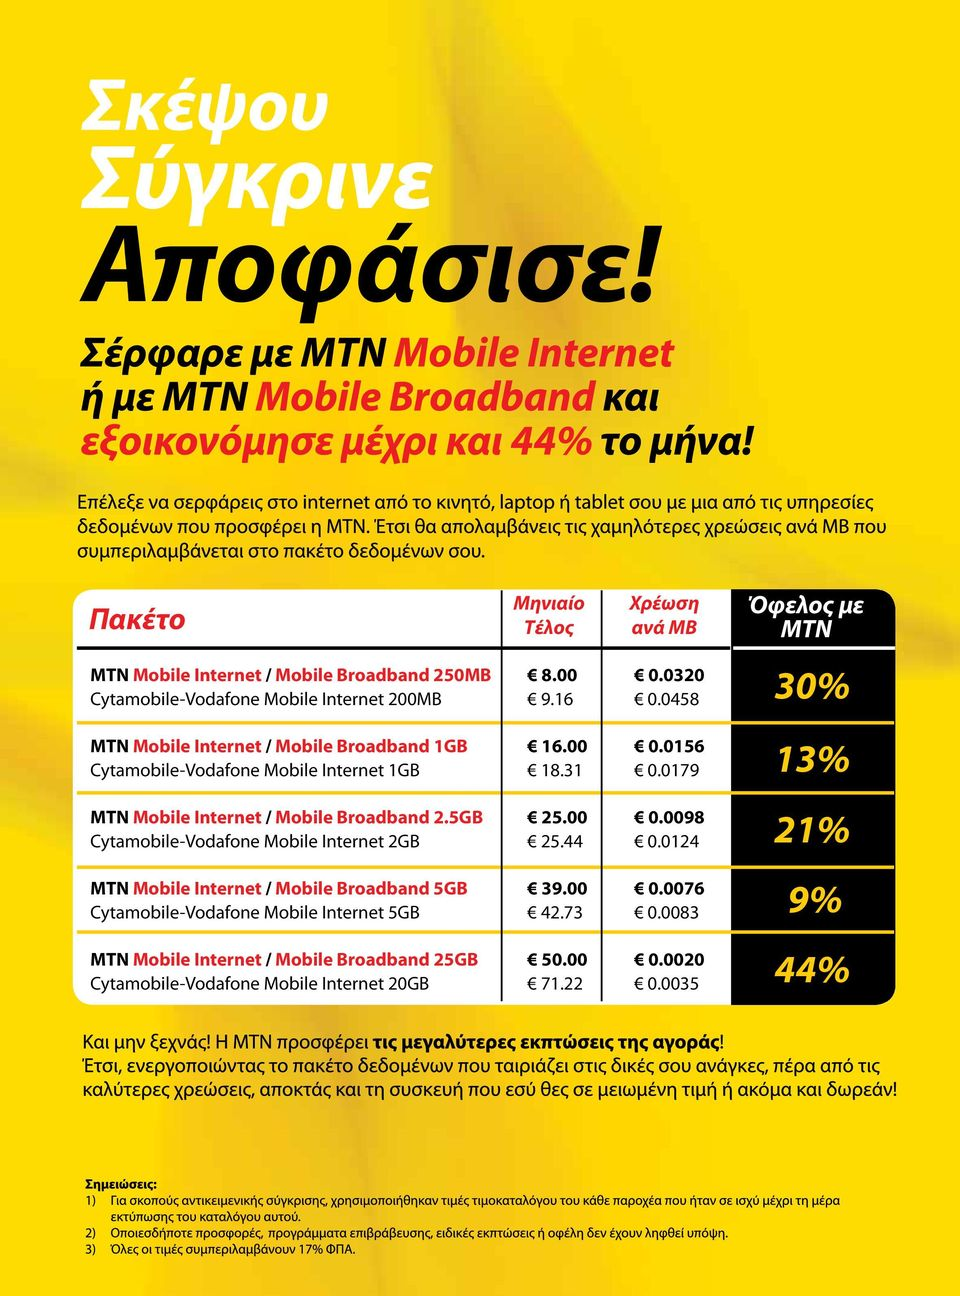 5GB 25.00 0.0098 Cytamobile-Vodafone Mobile Internet 2GB 25.44 0.0124 MTN Mobile Internet / Mobile Broadband 5GB 39.00 0.0076 Cytamobile-Vodafone Mobile Internet 5GB 42.